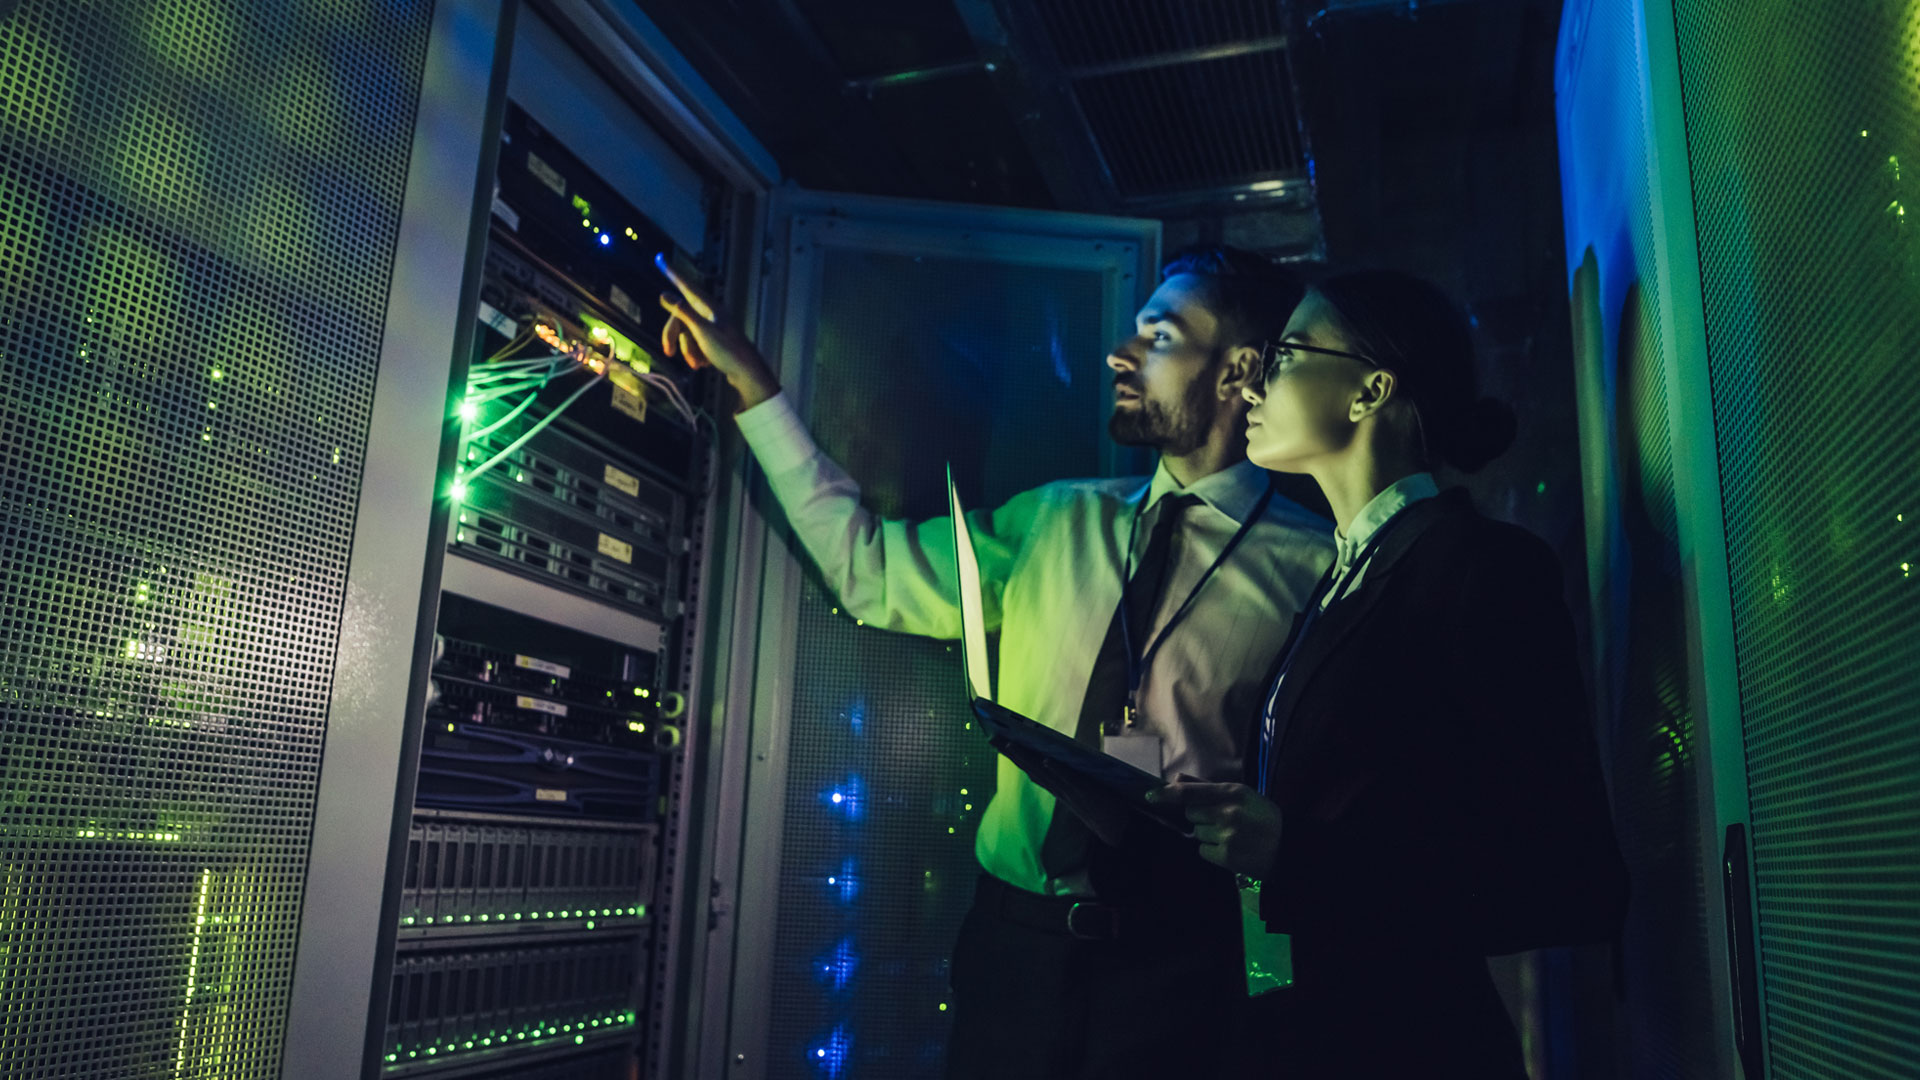 Man and Woman in Data Centre looking at a server rack